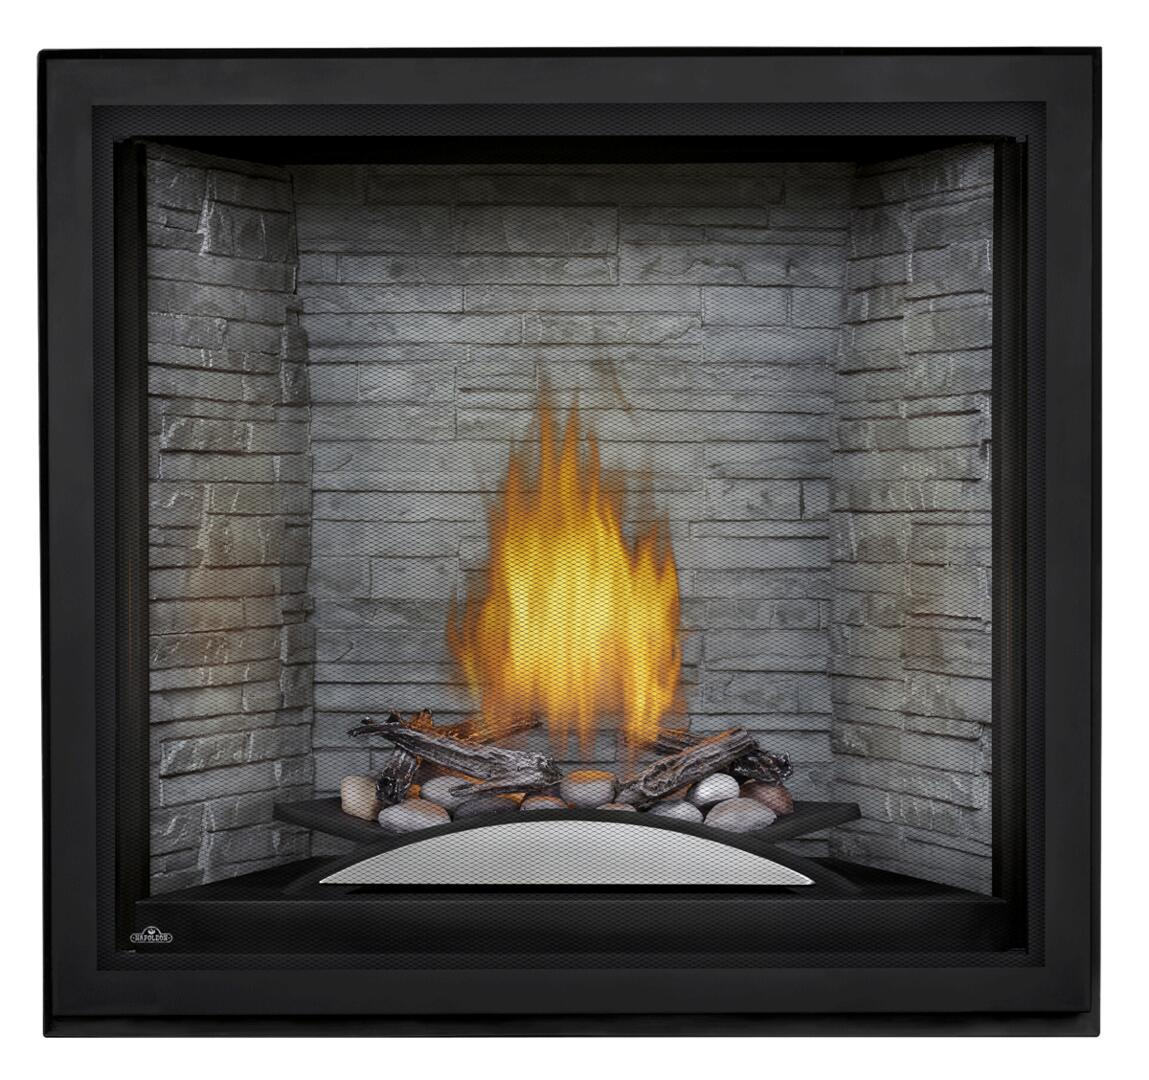 Direct Vent Gas Fireplace Ratings Napoleon Hdx52pt2